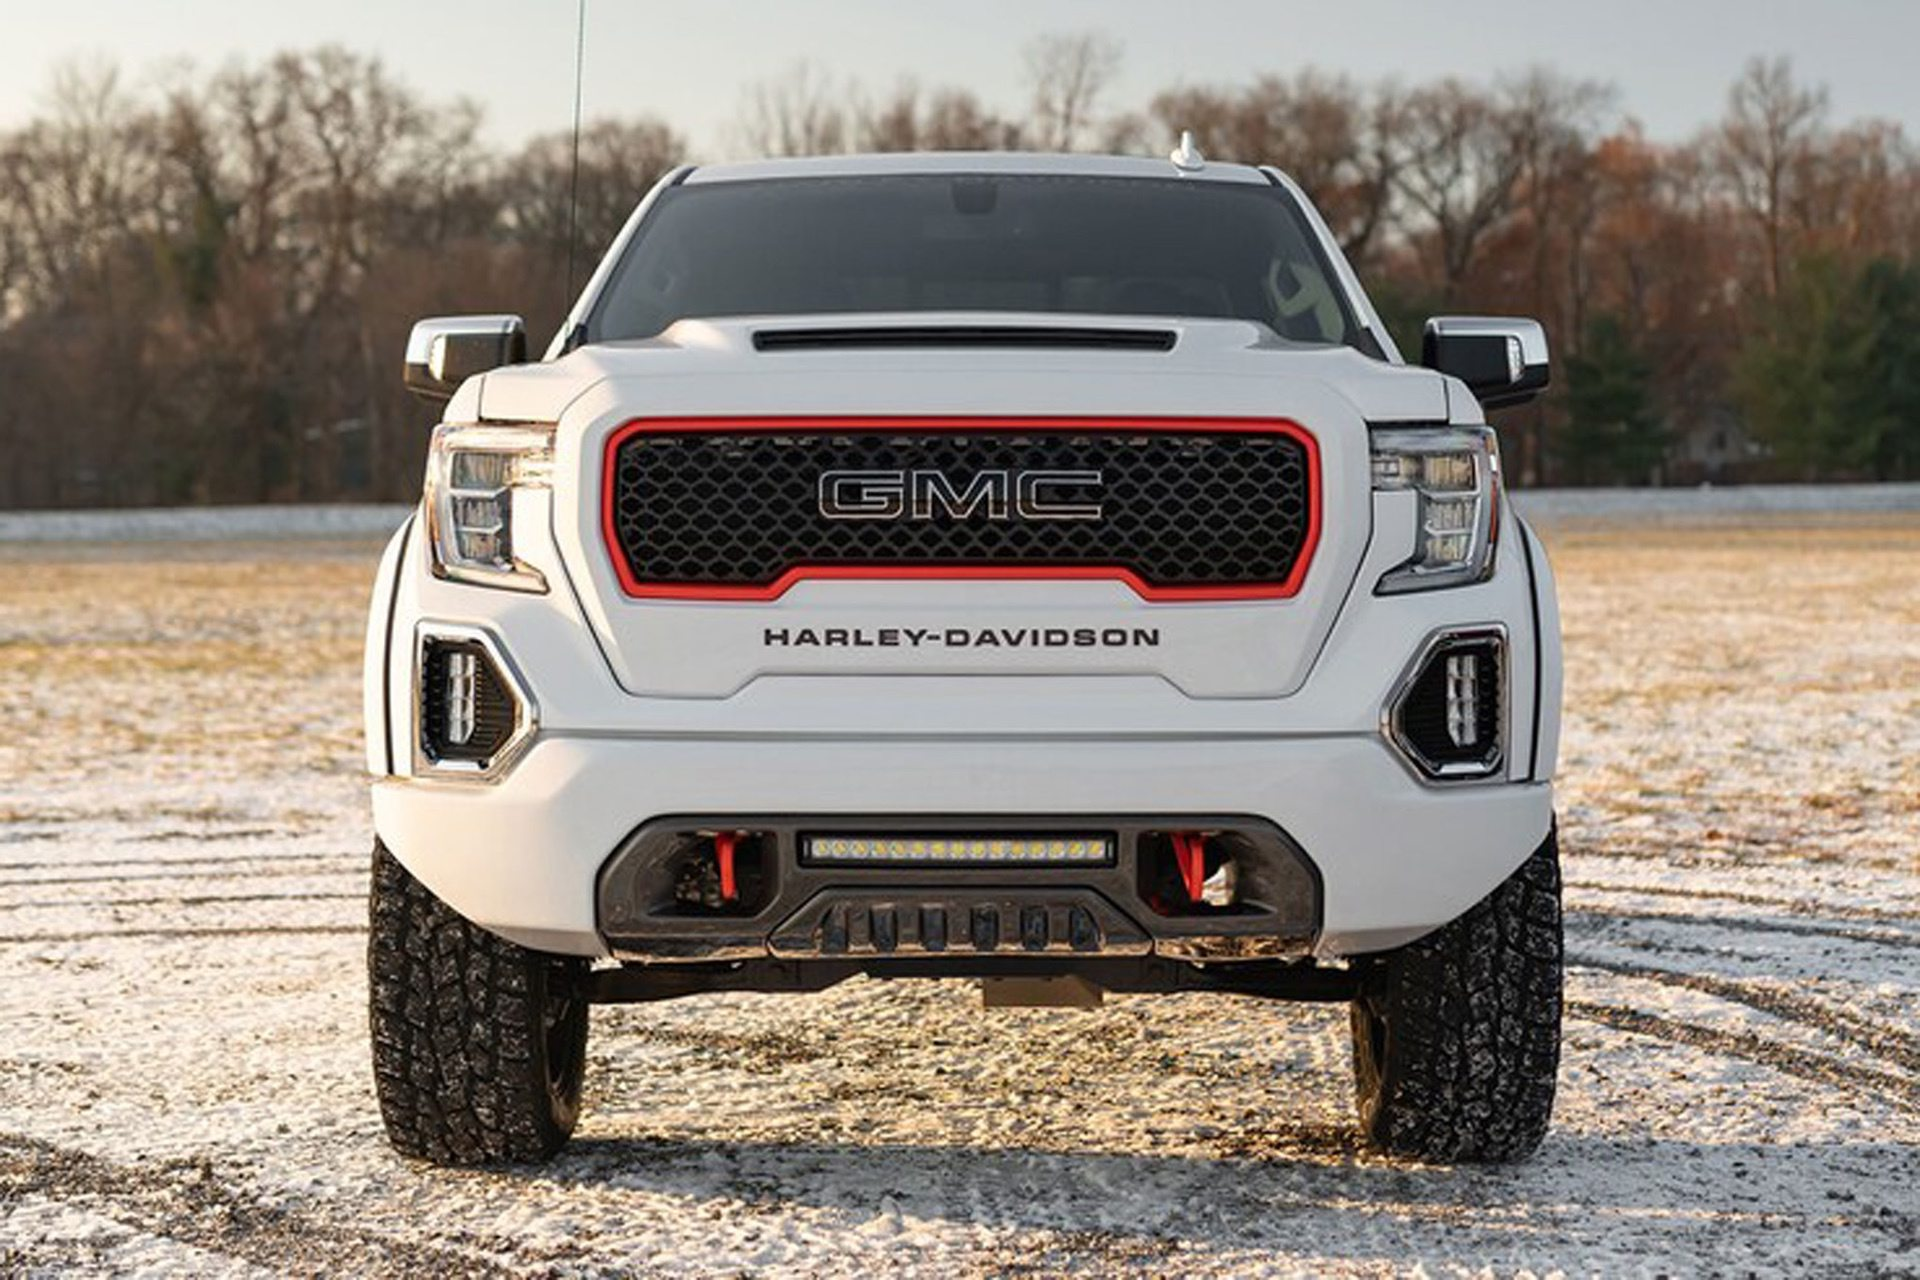 2020-GMC-Sierra-1500-Harley-Davidson-Edition-Tuscany-Automotive_0012